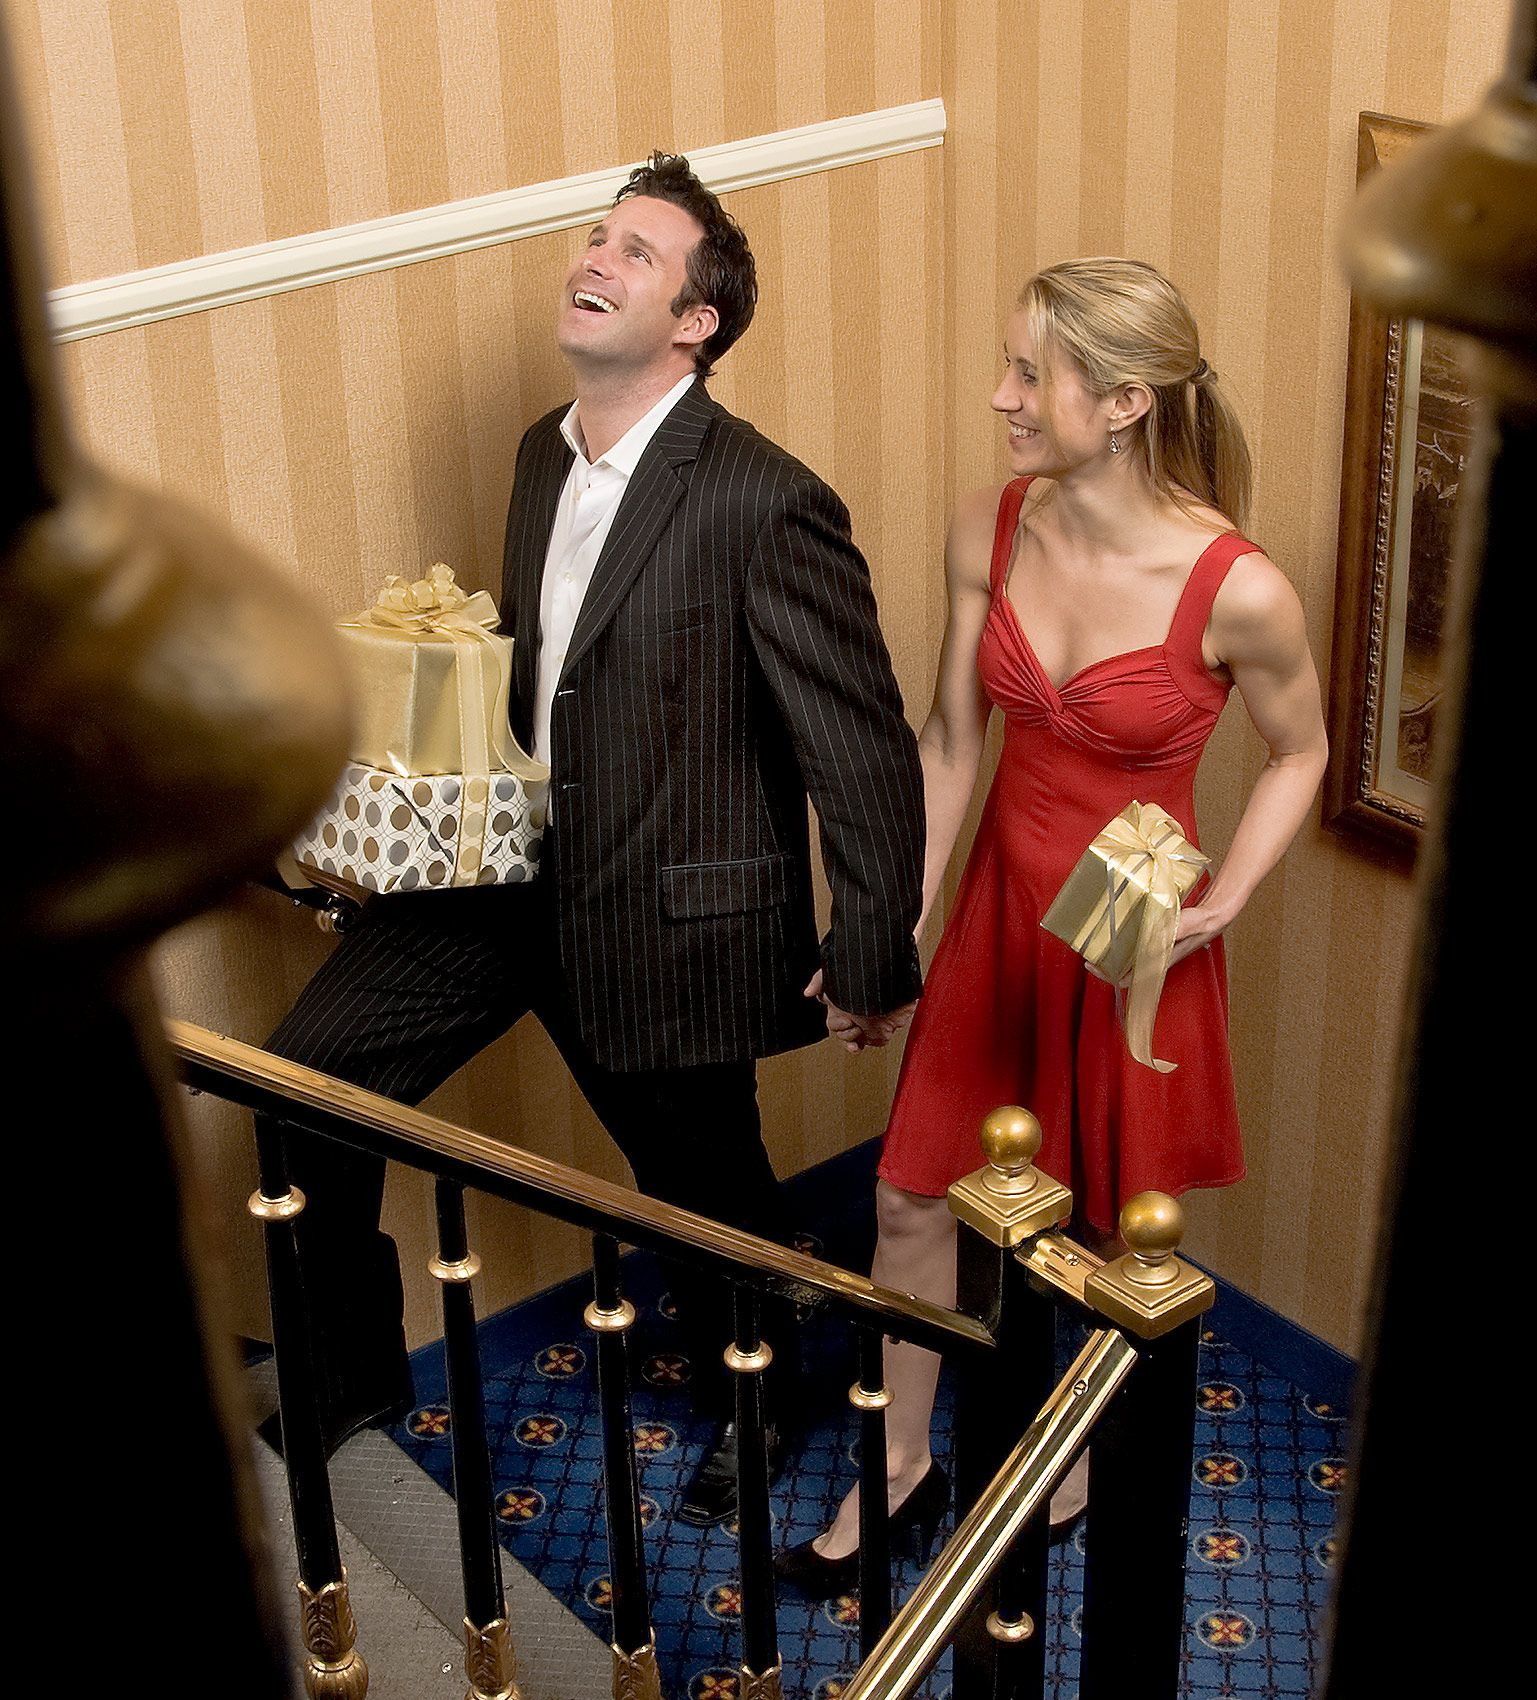 couple-on-stairs_DSC5175_cropped.jpg